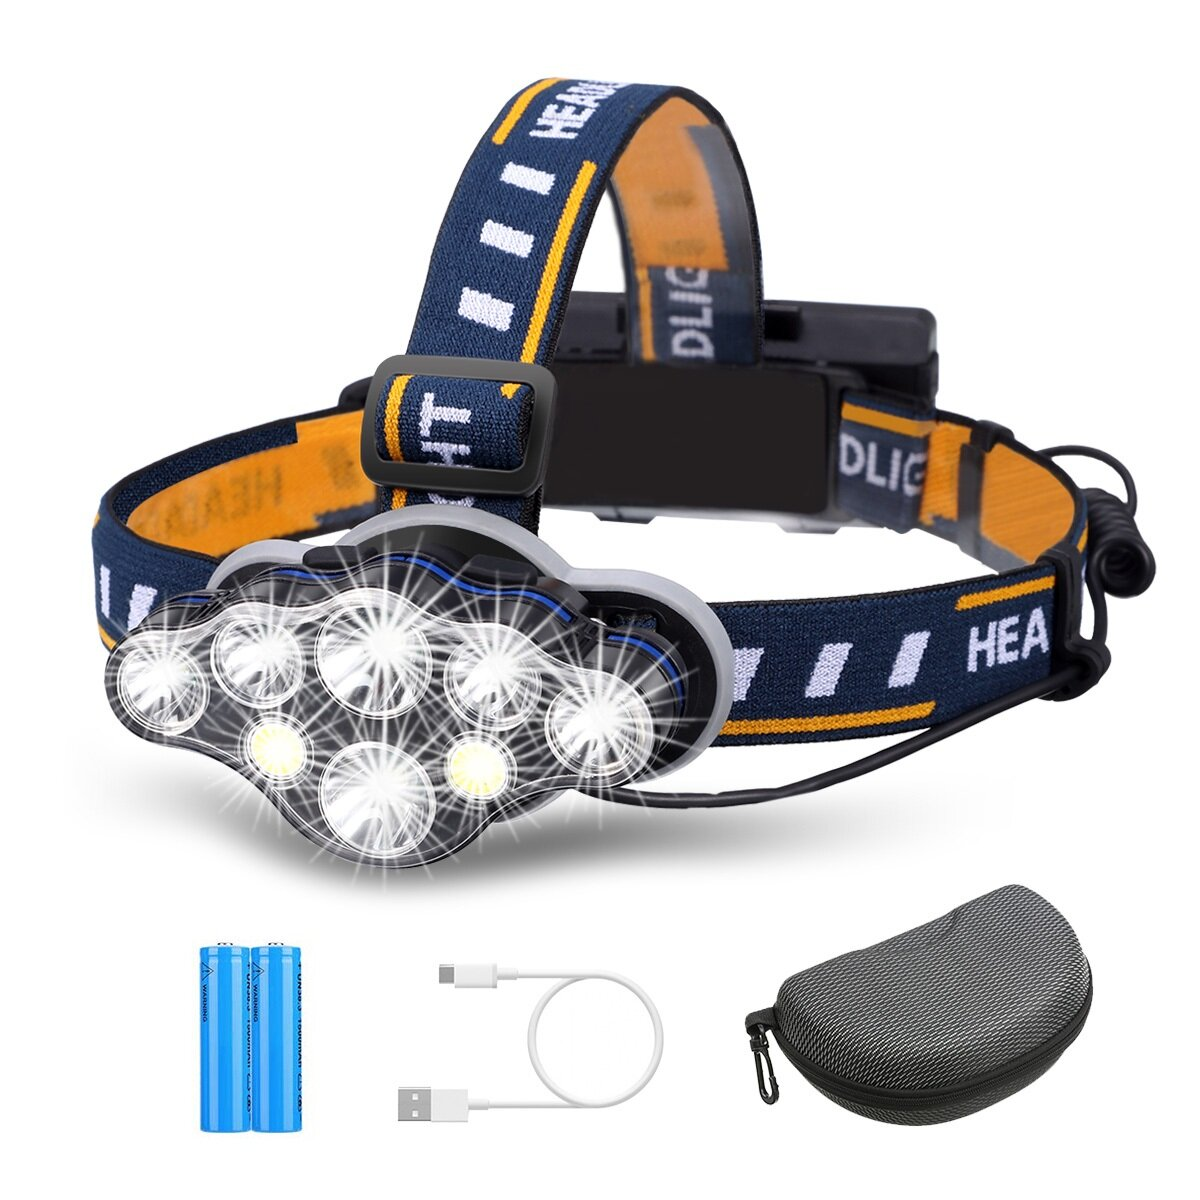 OUTERDO 3300LM 8Modes 8LED Rechargeable Headlamp Flashlight with USB Cable 2 Batteries, Waterproof LED Head Torch Head L